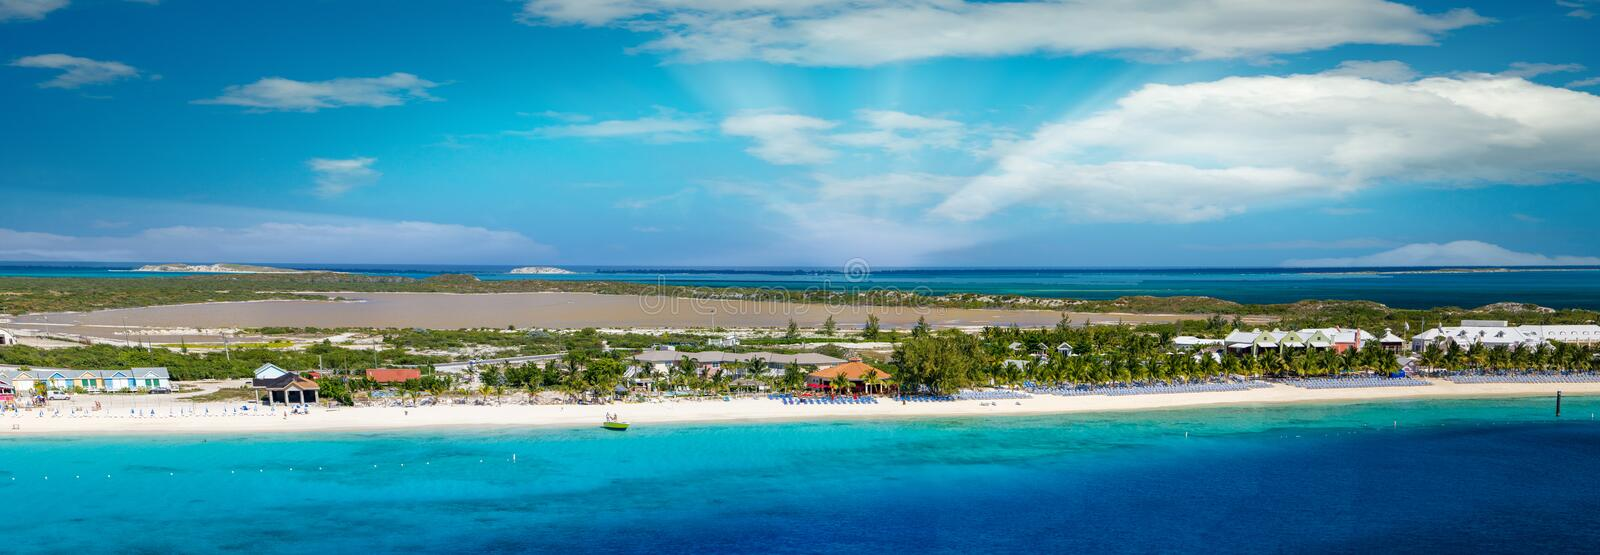 Grand Turk, Turks and Caicos Islands stock image